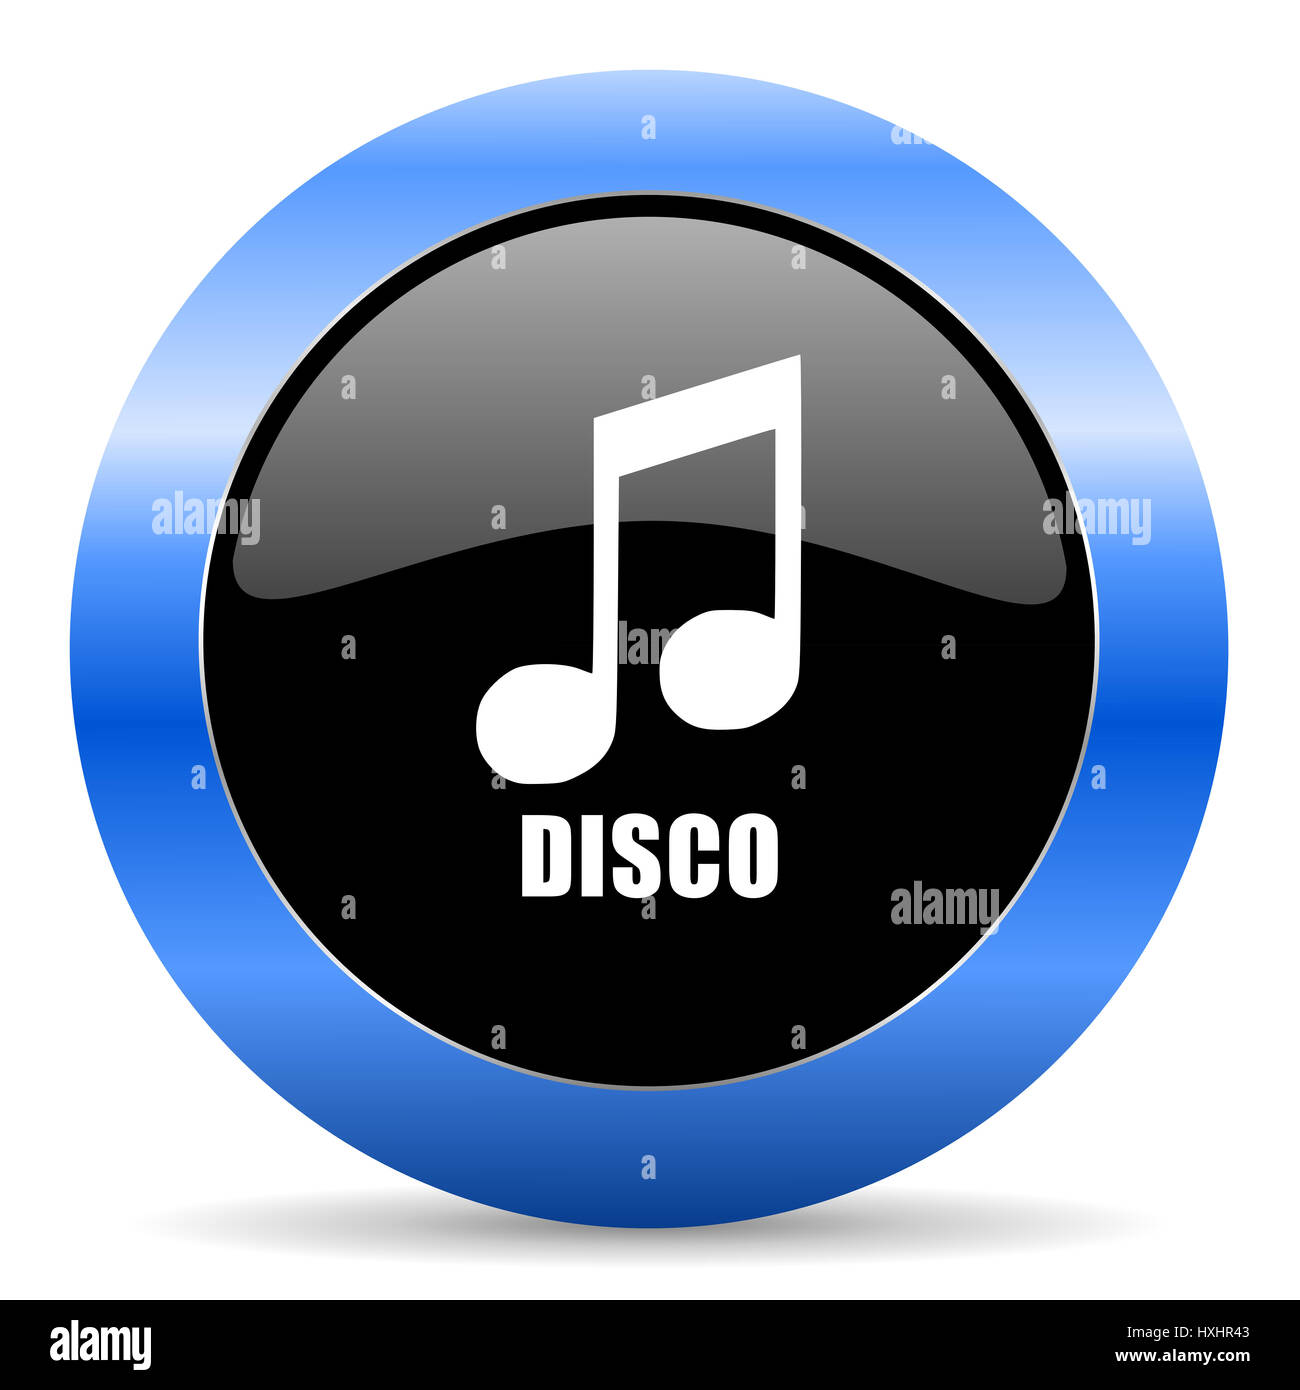 Disco music black and blue web design round internet icon with shadow on white background. - Stock Image